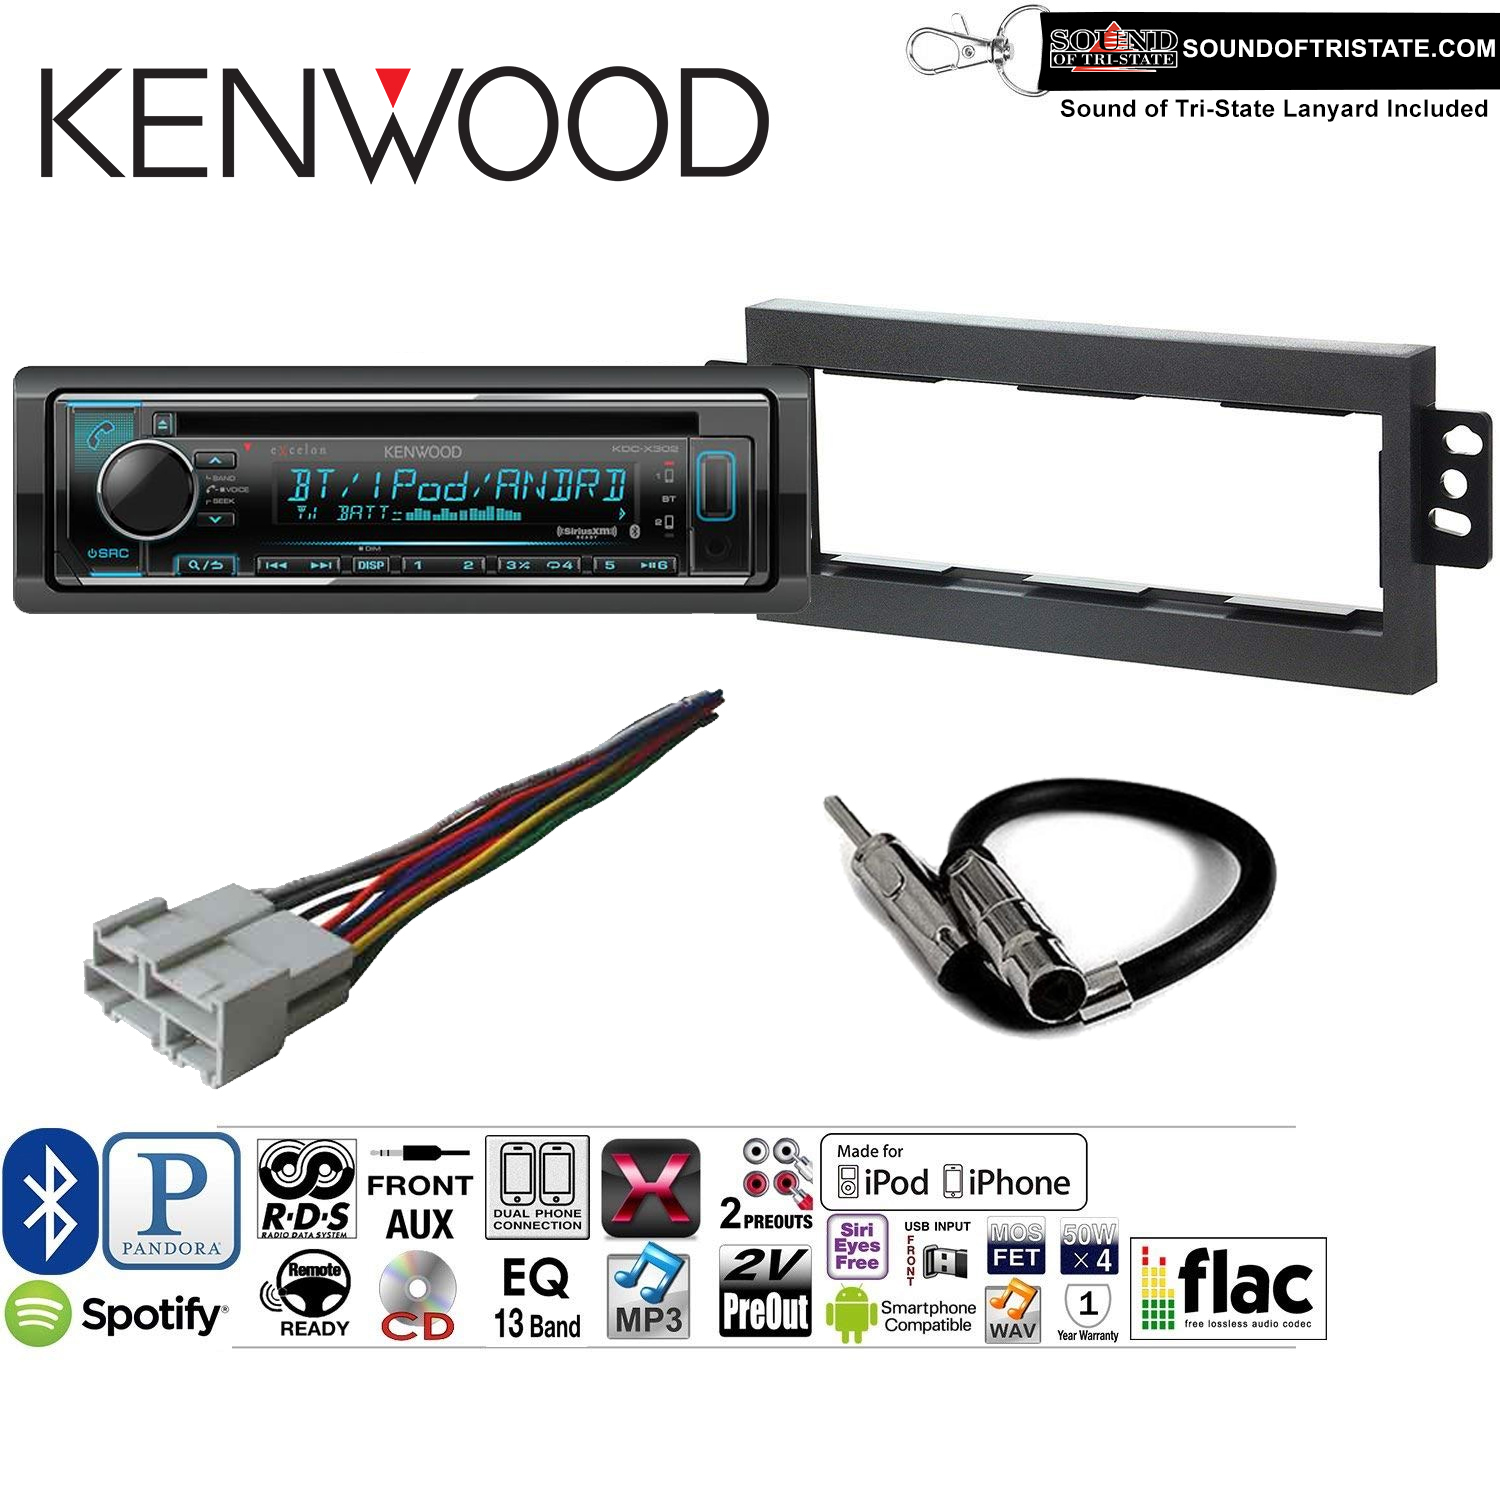 Kenwood KDCX302 Double Din Radio Install Kit with Bluetooth, CD Player, USB/AUX Fits 1994-1996 Chevrolet Impala, 1997-2000 Chevrolet Malibu and a SOTS lanyard included